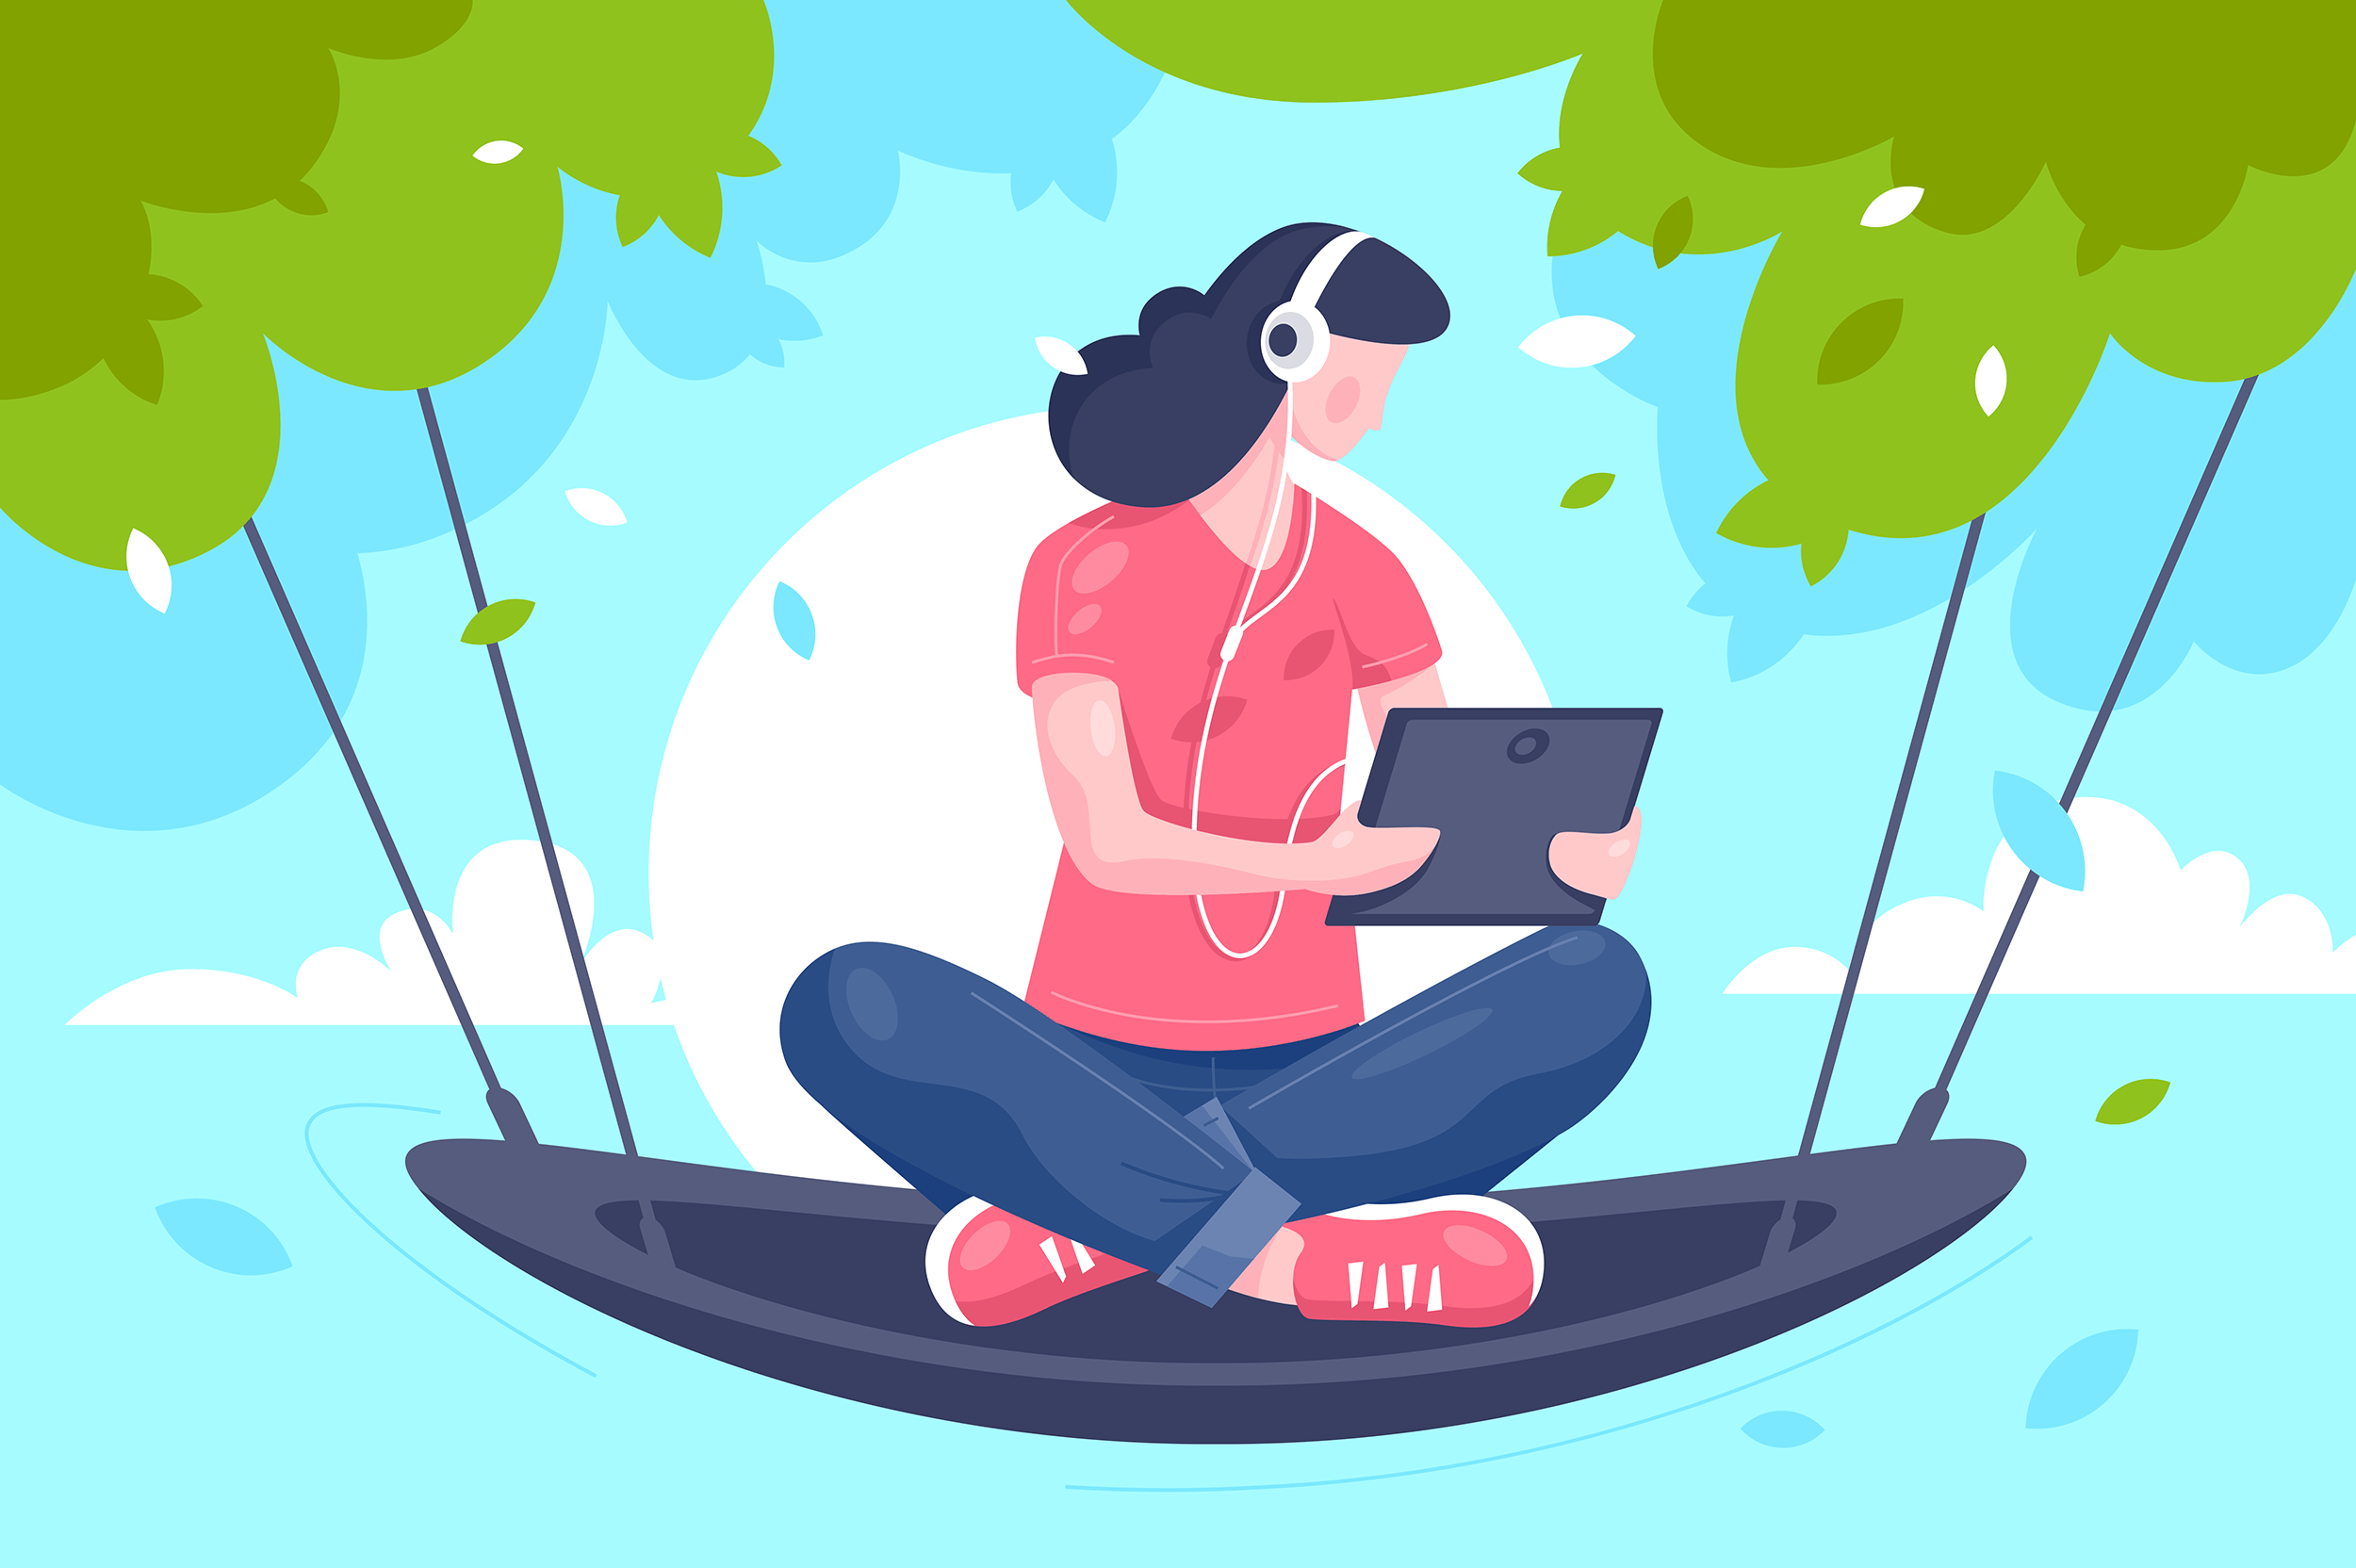 Flat young girl with tablet, headphones at hammock on tree.